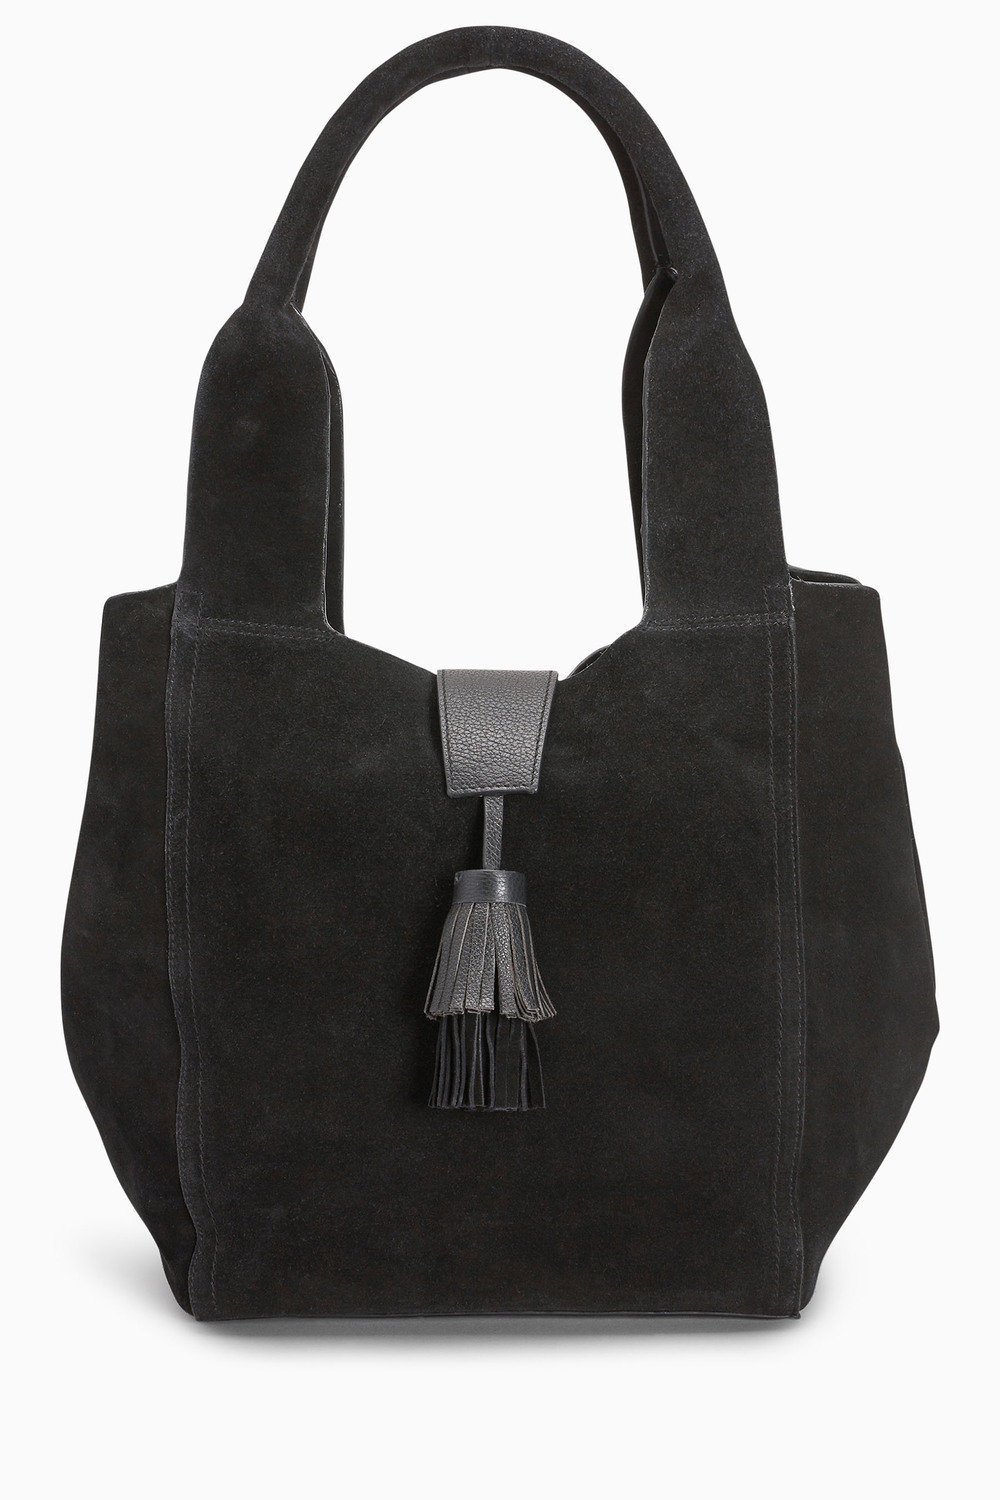 a9e8547d0a Next Leather Tassel Hobo Bag Online